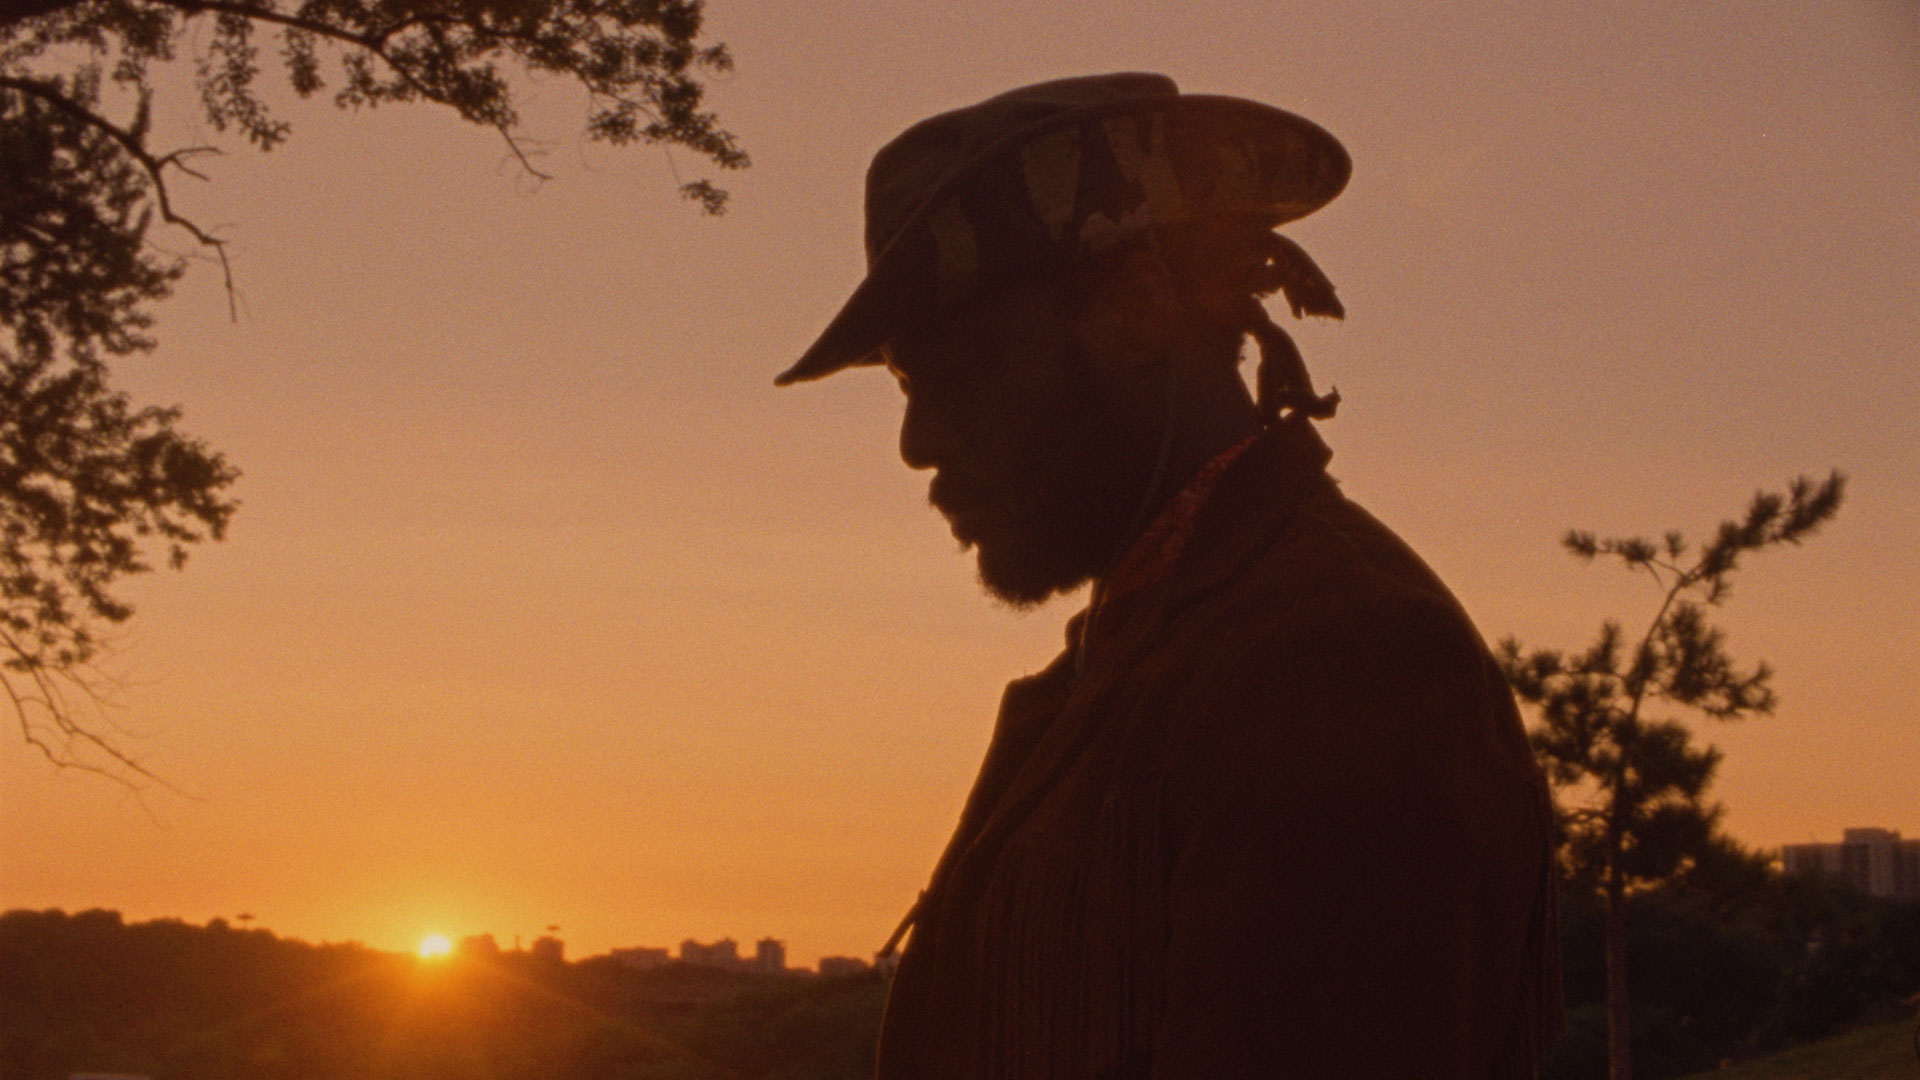 Man in hat in front of sunset sky.